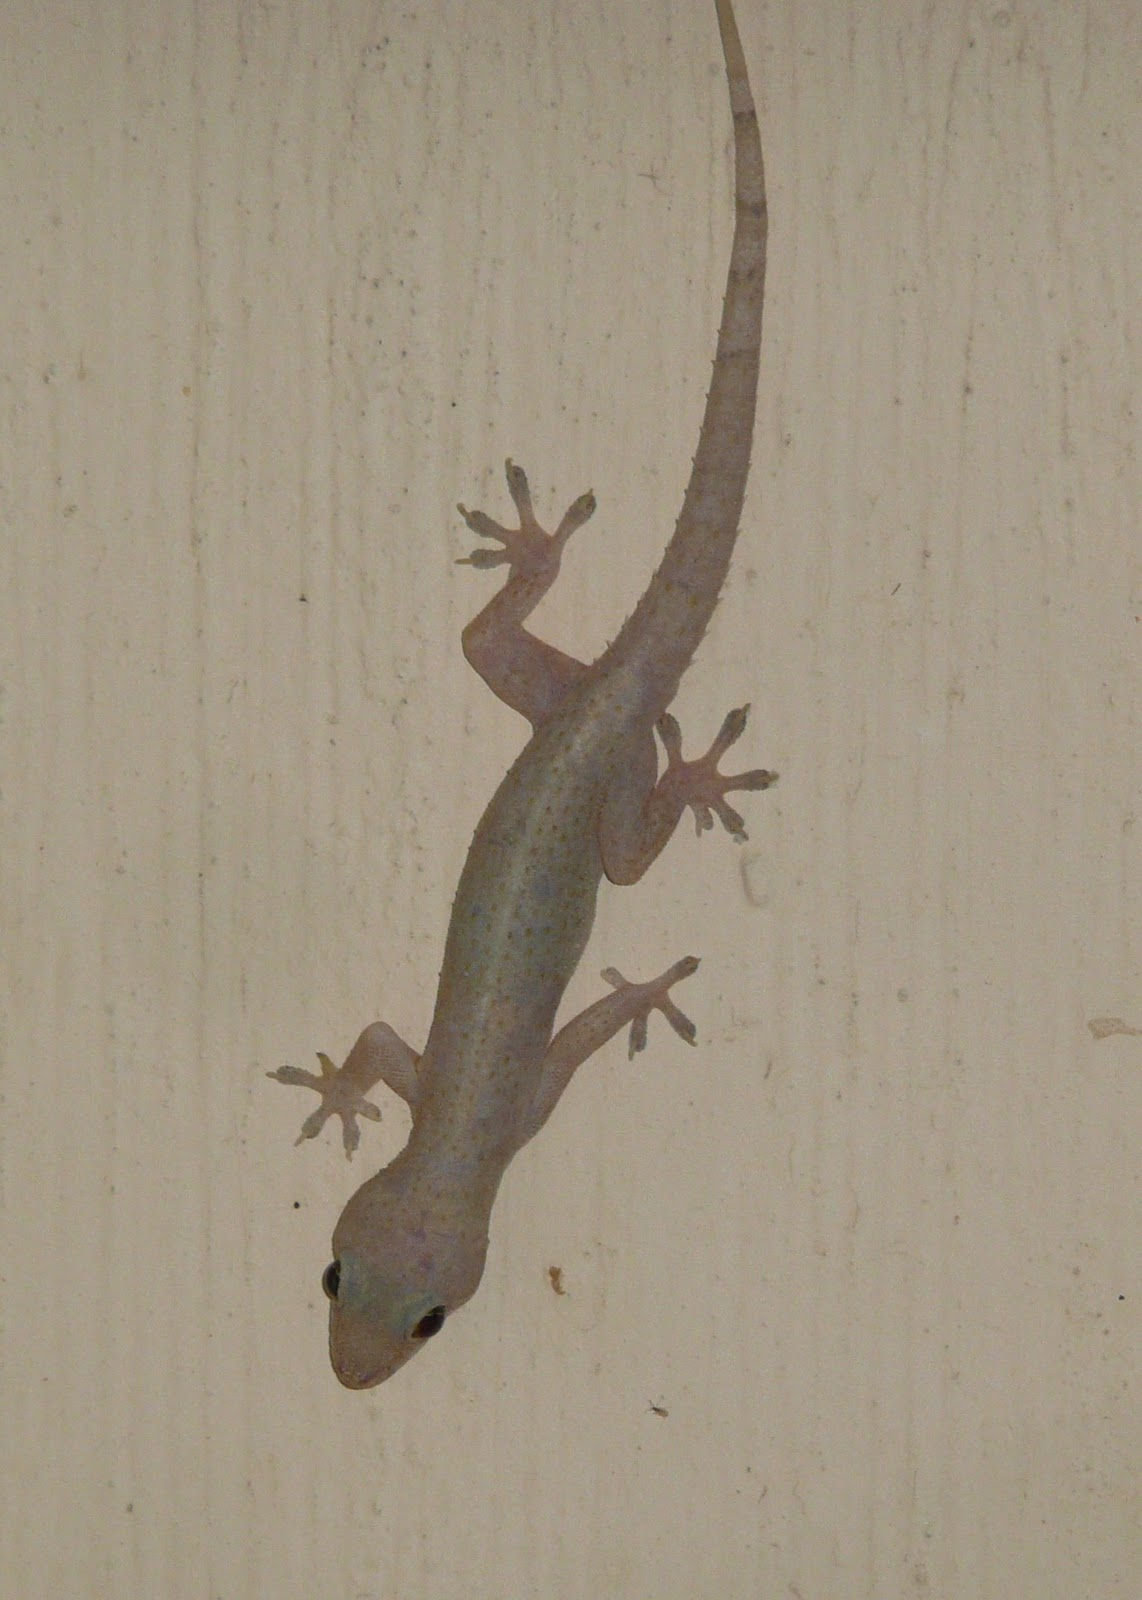 florida house gecko images - reverse search